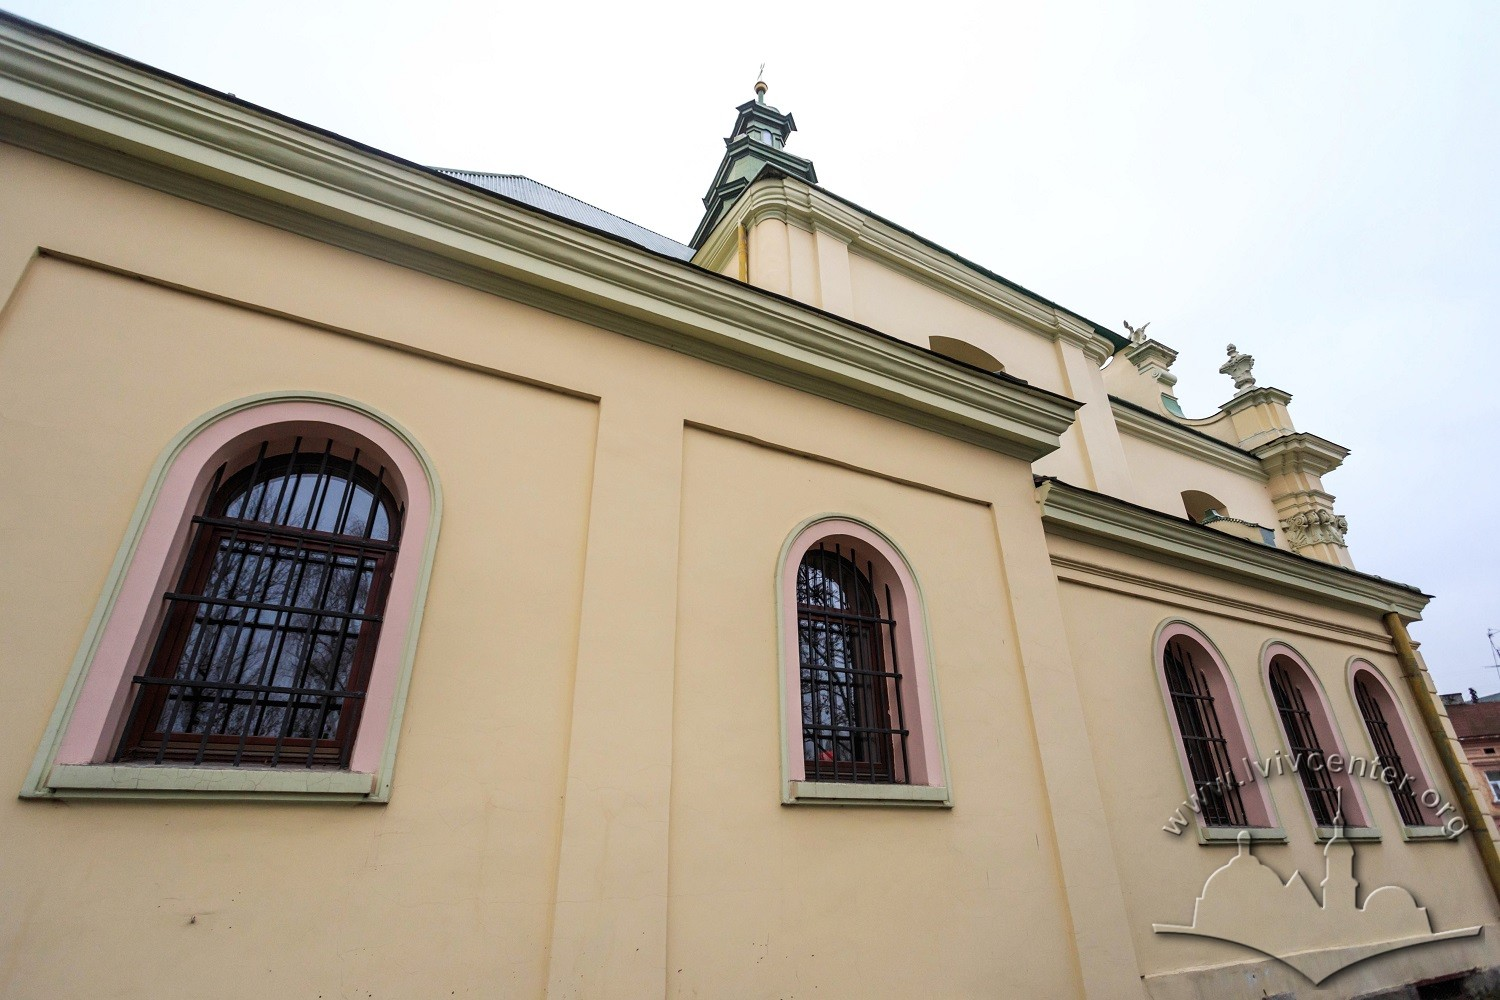 Vul. Zhovkivska, 8. Northern facade of the former church building/Photo courtesy of Nazarii Parkhomyk, 2015